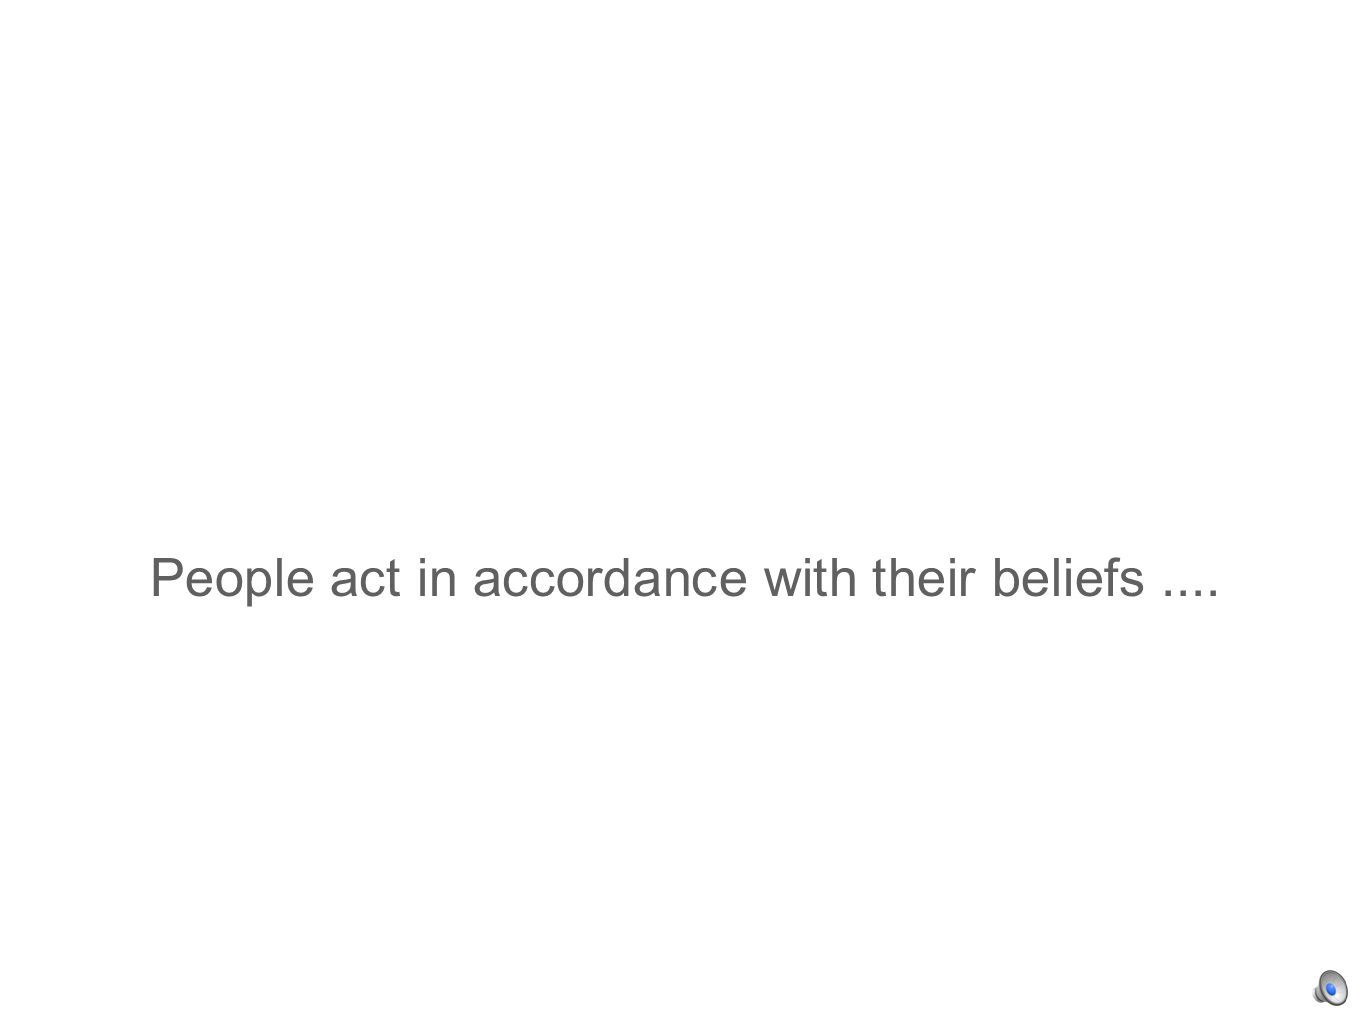 People act in accordance with their beliefs....